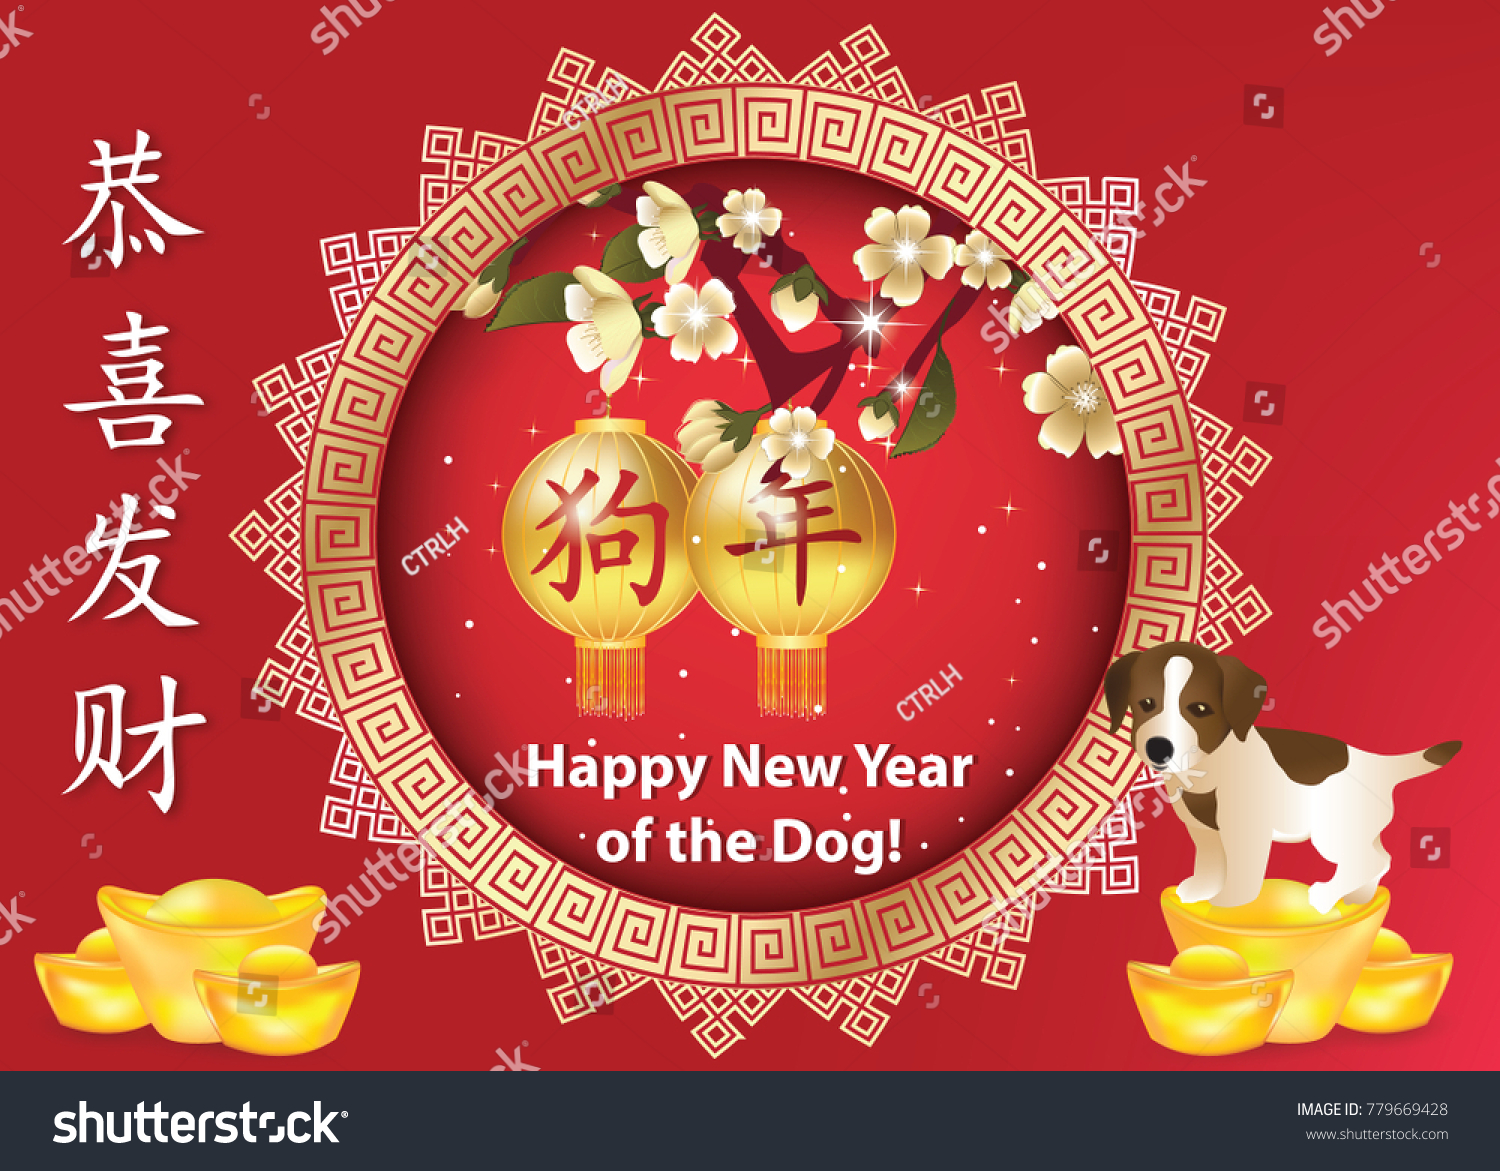 Happy Chinese New Year 2018 Greeting Stock Illustration 779669428